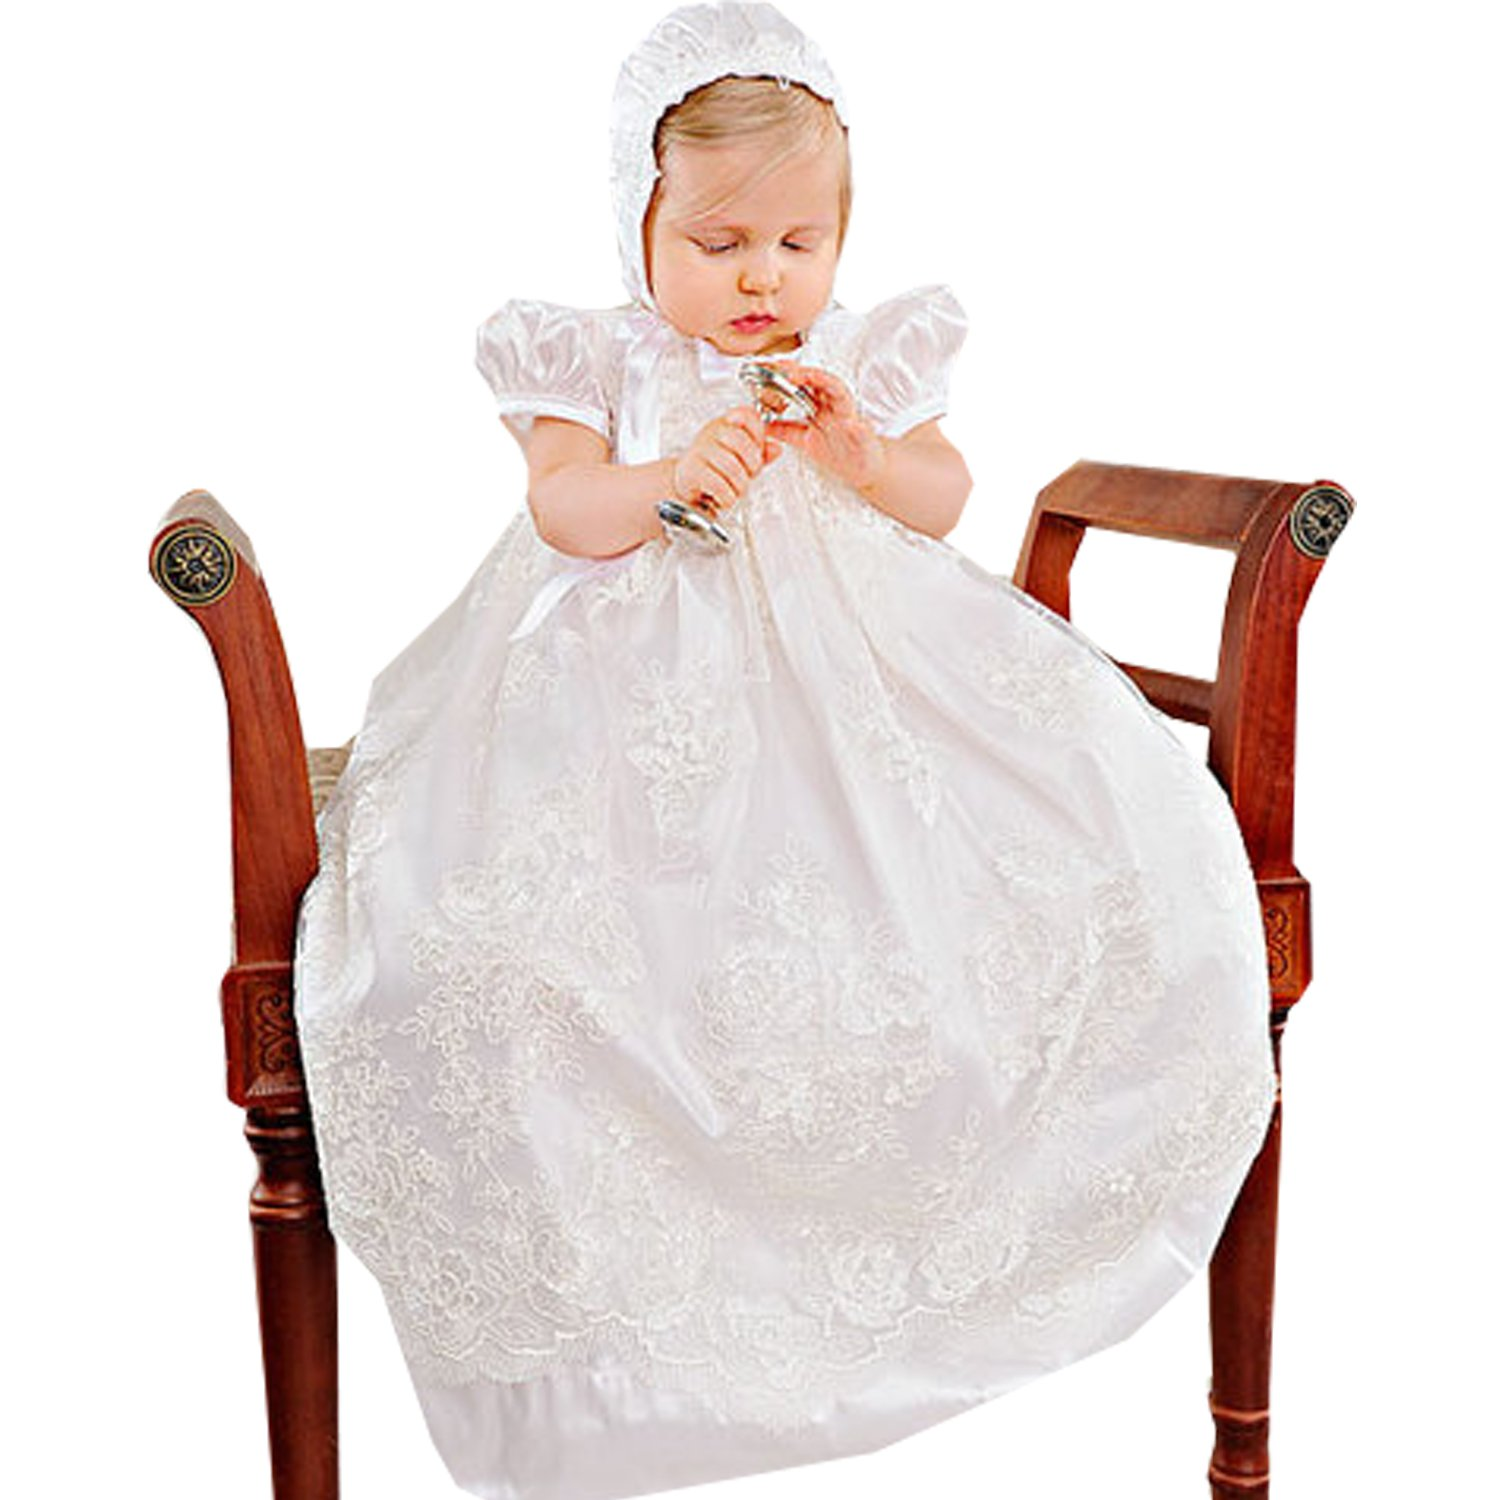 Newdeve Ivory Satin Lace Baptism Gowns Unisex with Ruffle Sleeve (18-24 months)